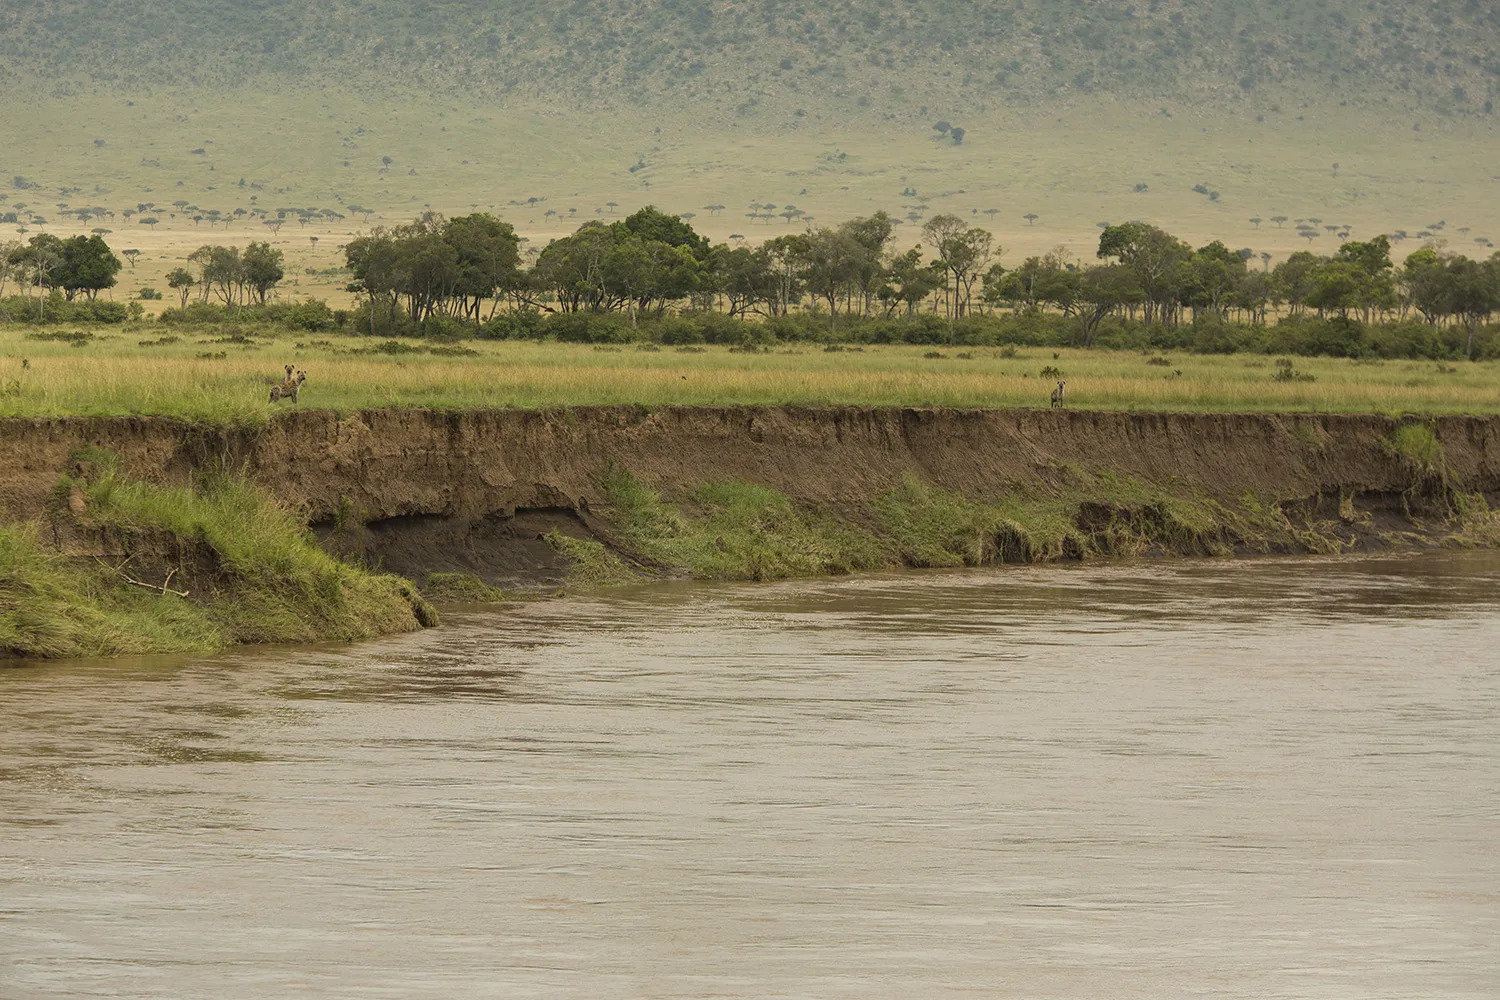 Hyenas and river